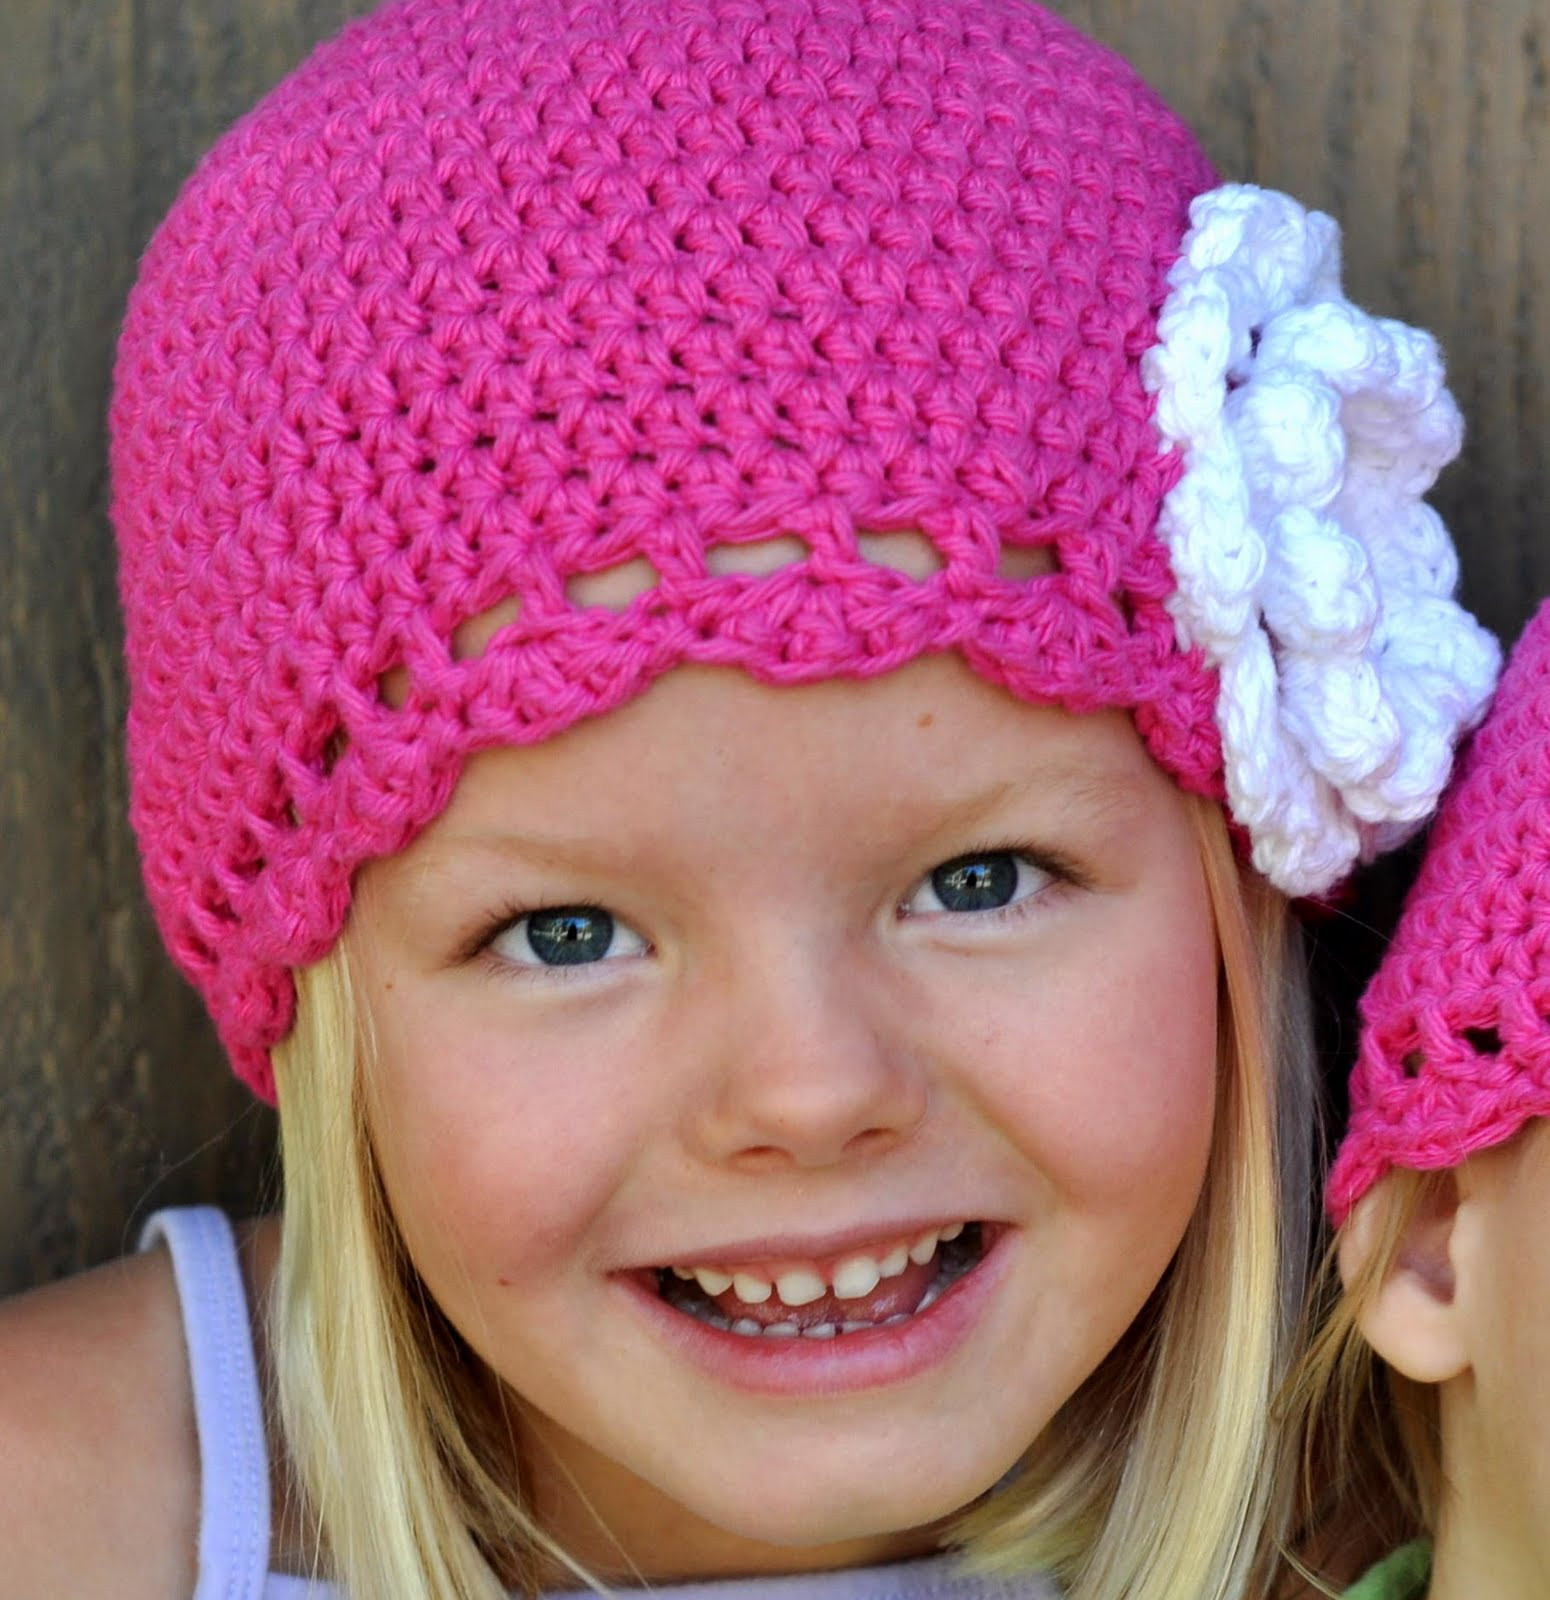 Luxury Aesthetic Nest Crochet Best Little Girl Cloche Crochet for Girls Of Marvelous 40 Pics Crochet for Girls